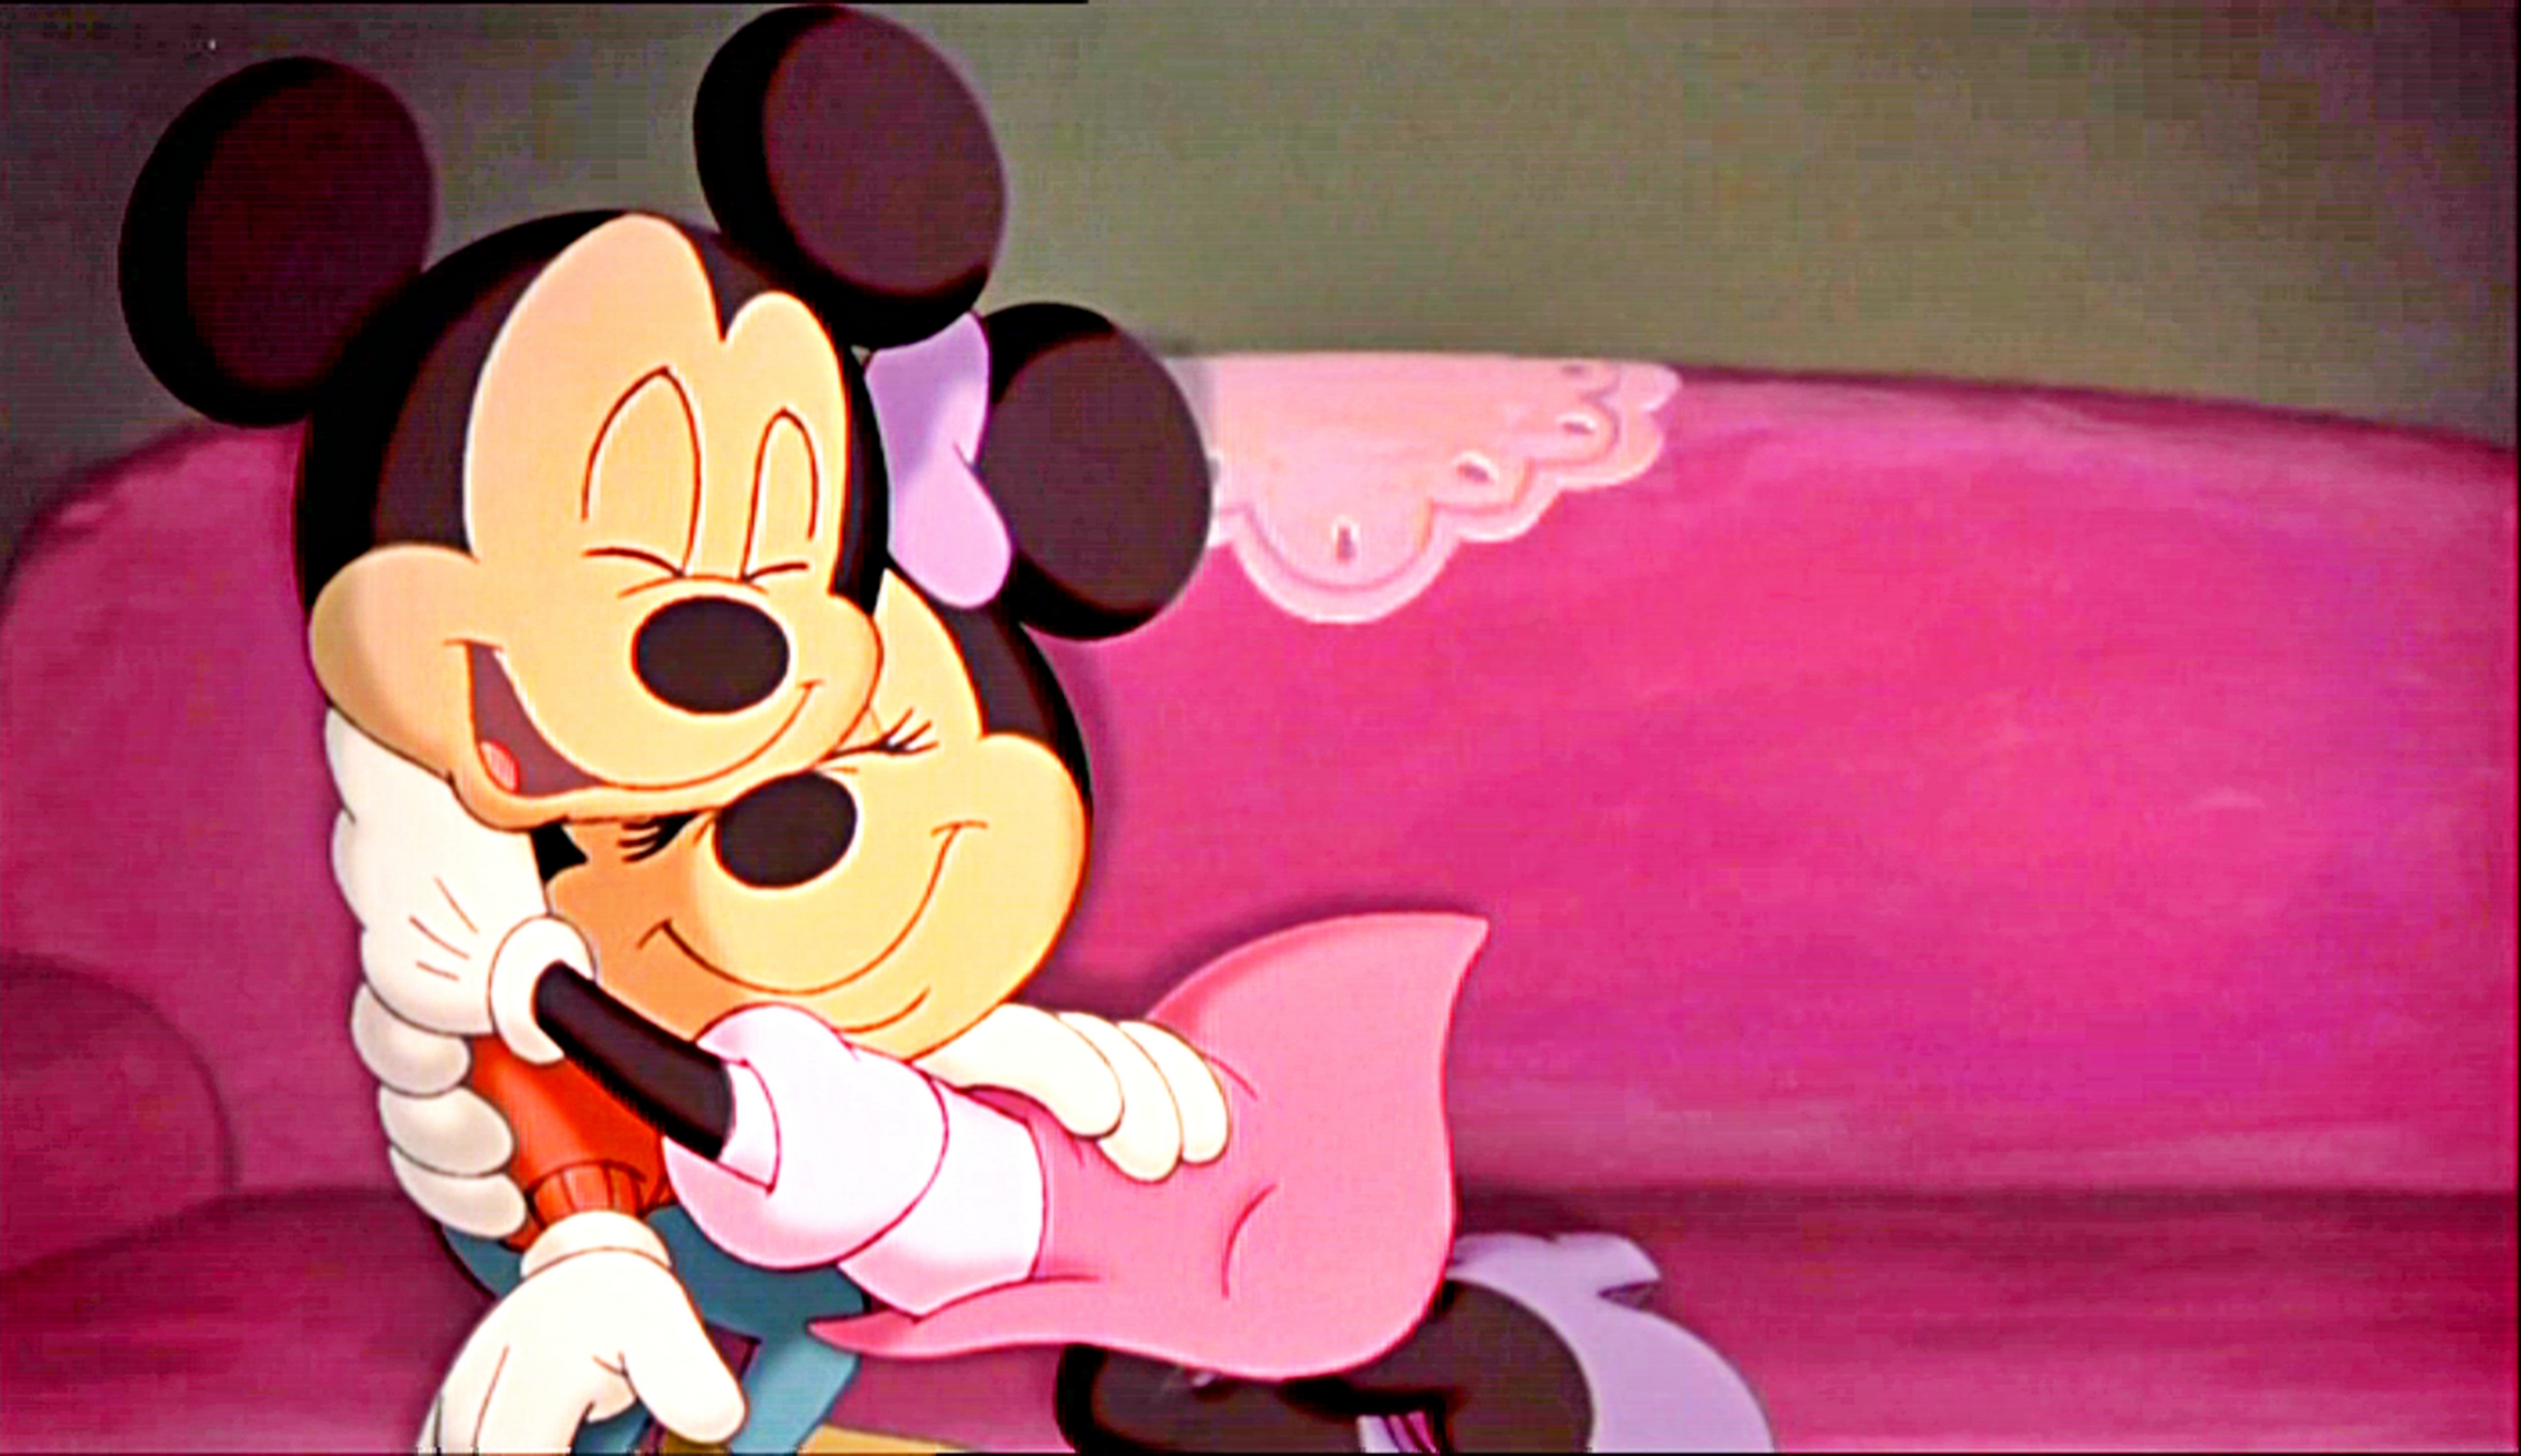 wallpapers everyday so you can enjoy them all DToday a Minnie 2560x1479